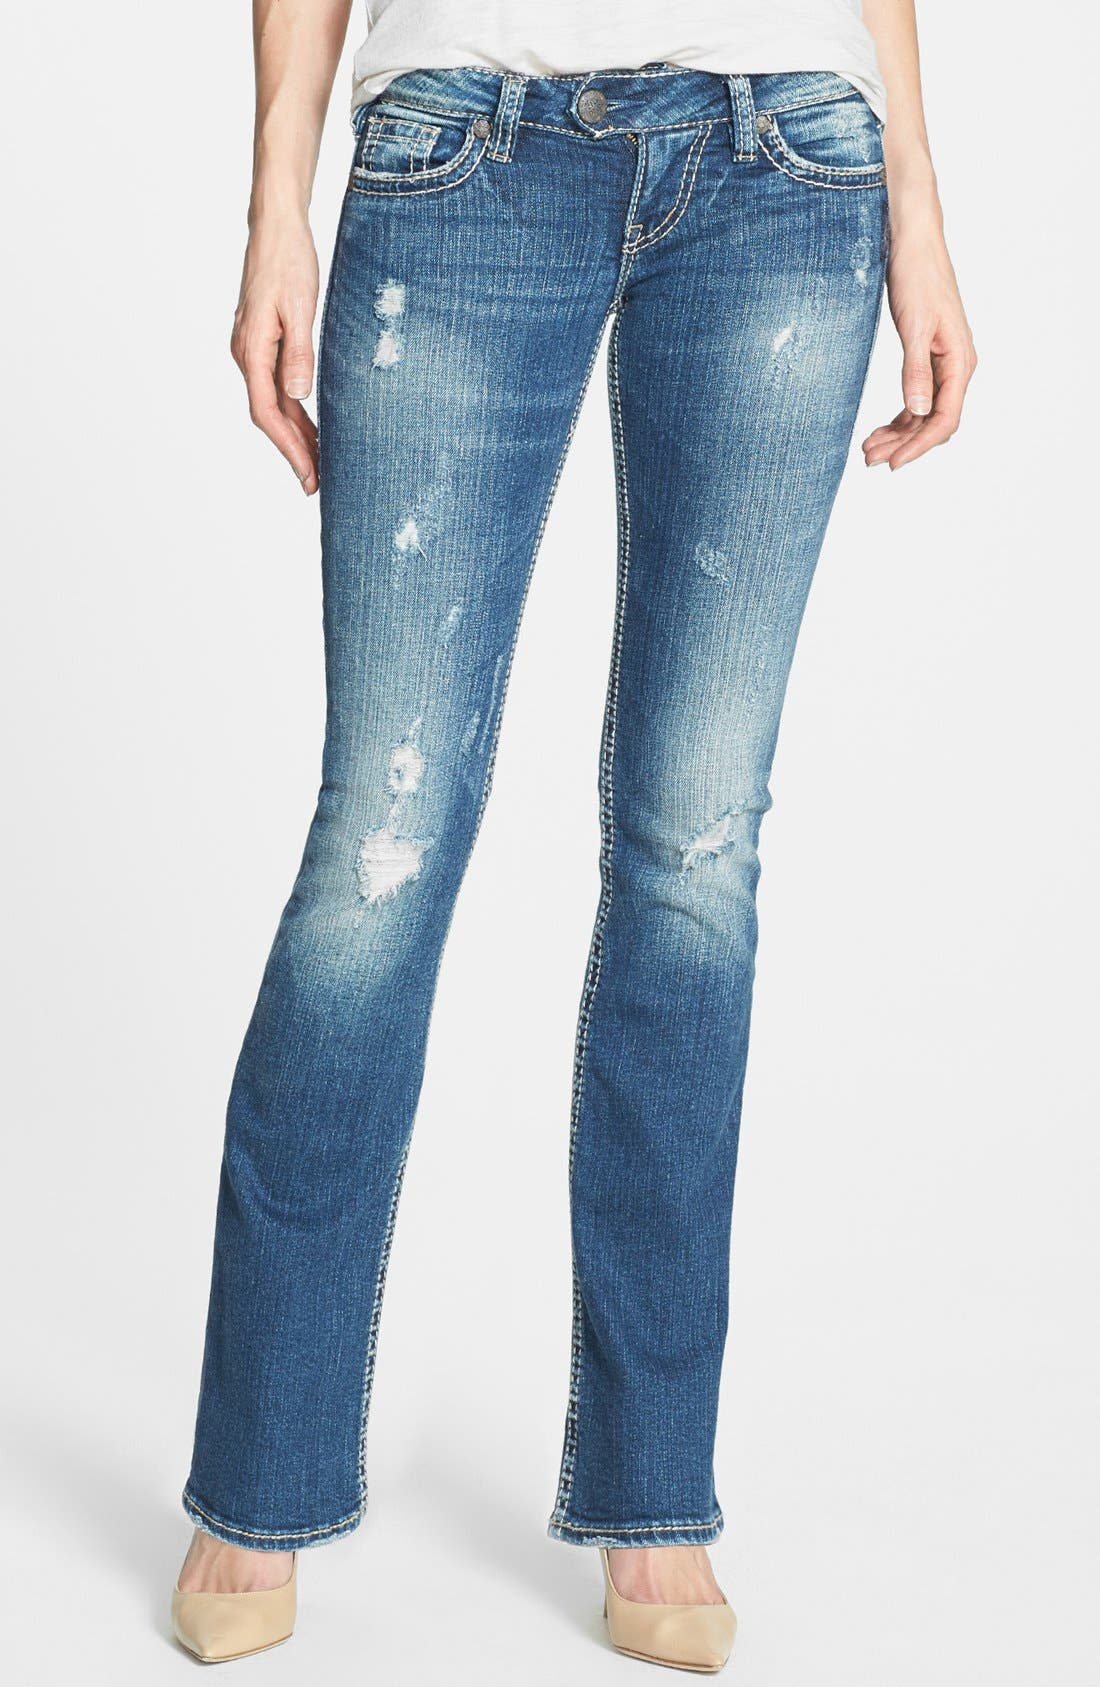 Alternate Image 1 Selected - Silver Jeans Co. 'Tuesday' Distressed Bootcut Jeans (Indigo)